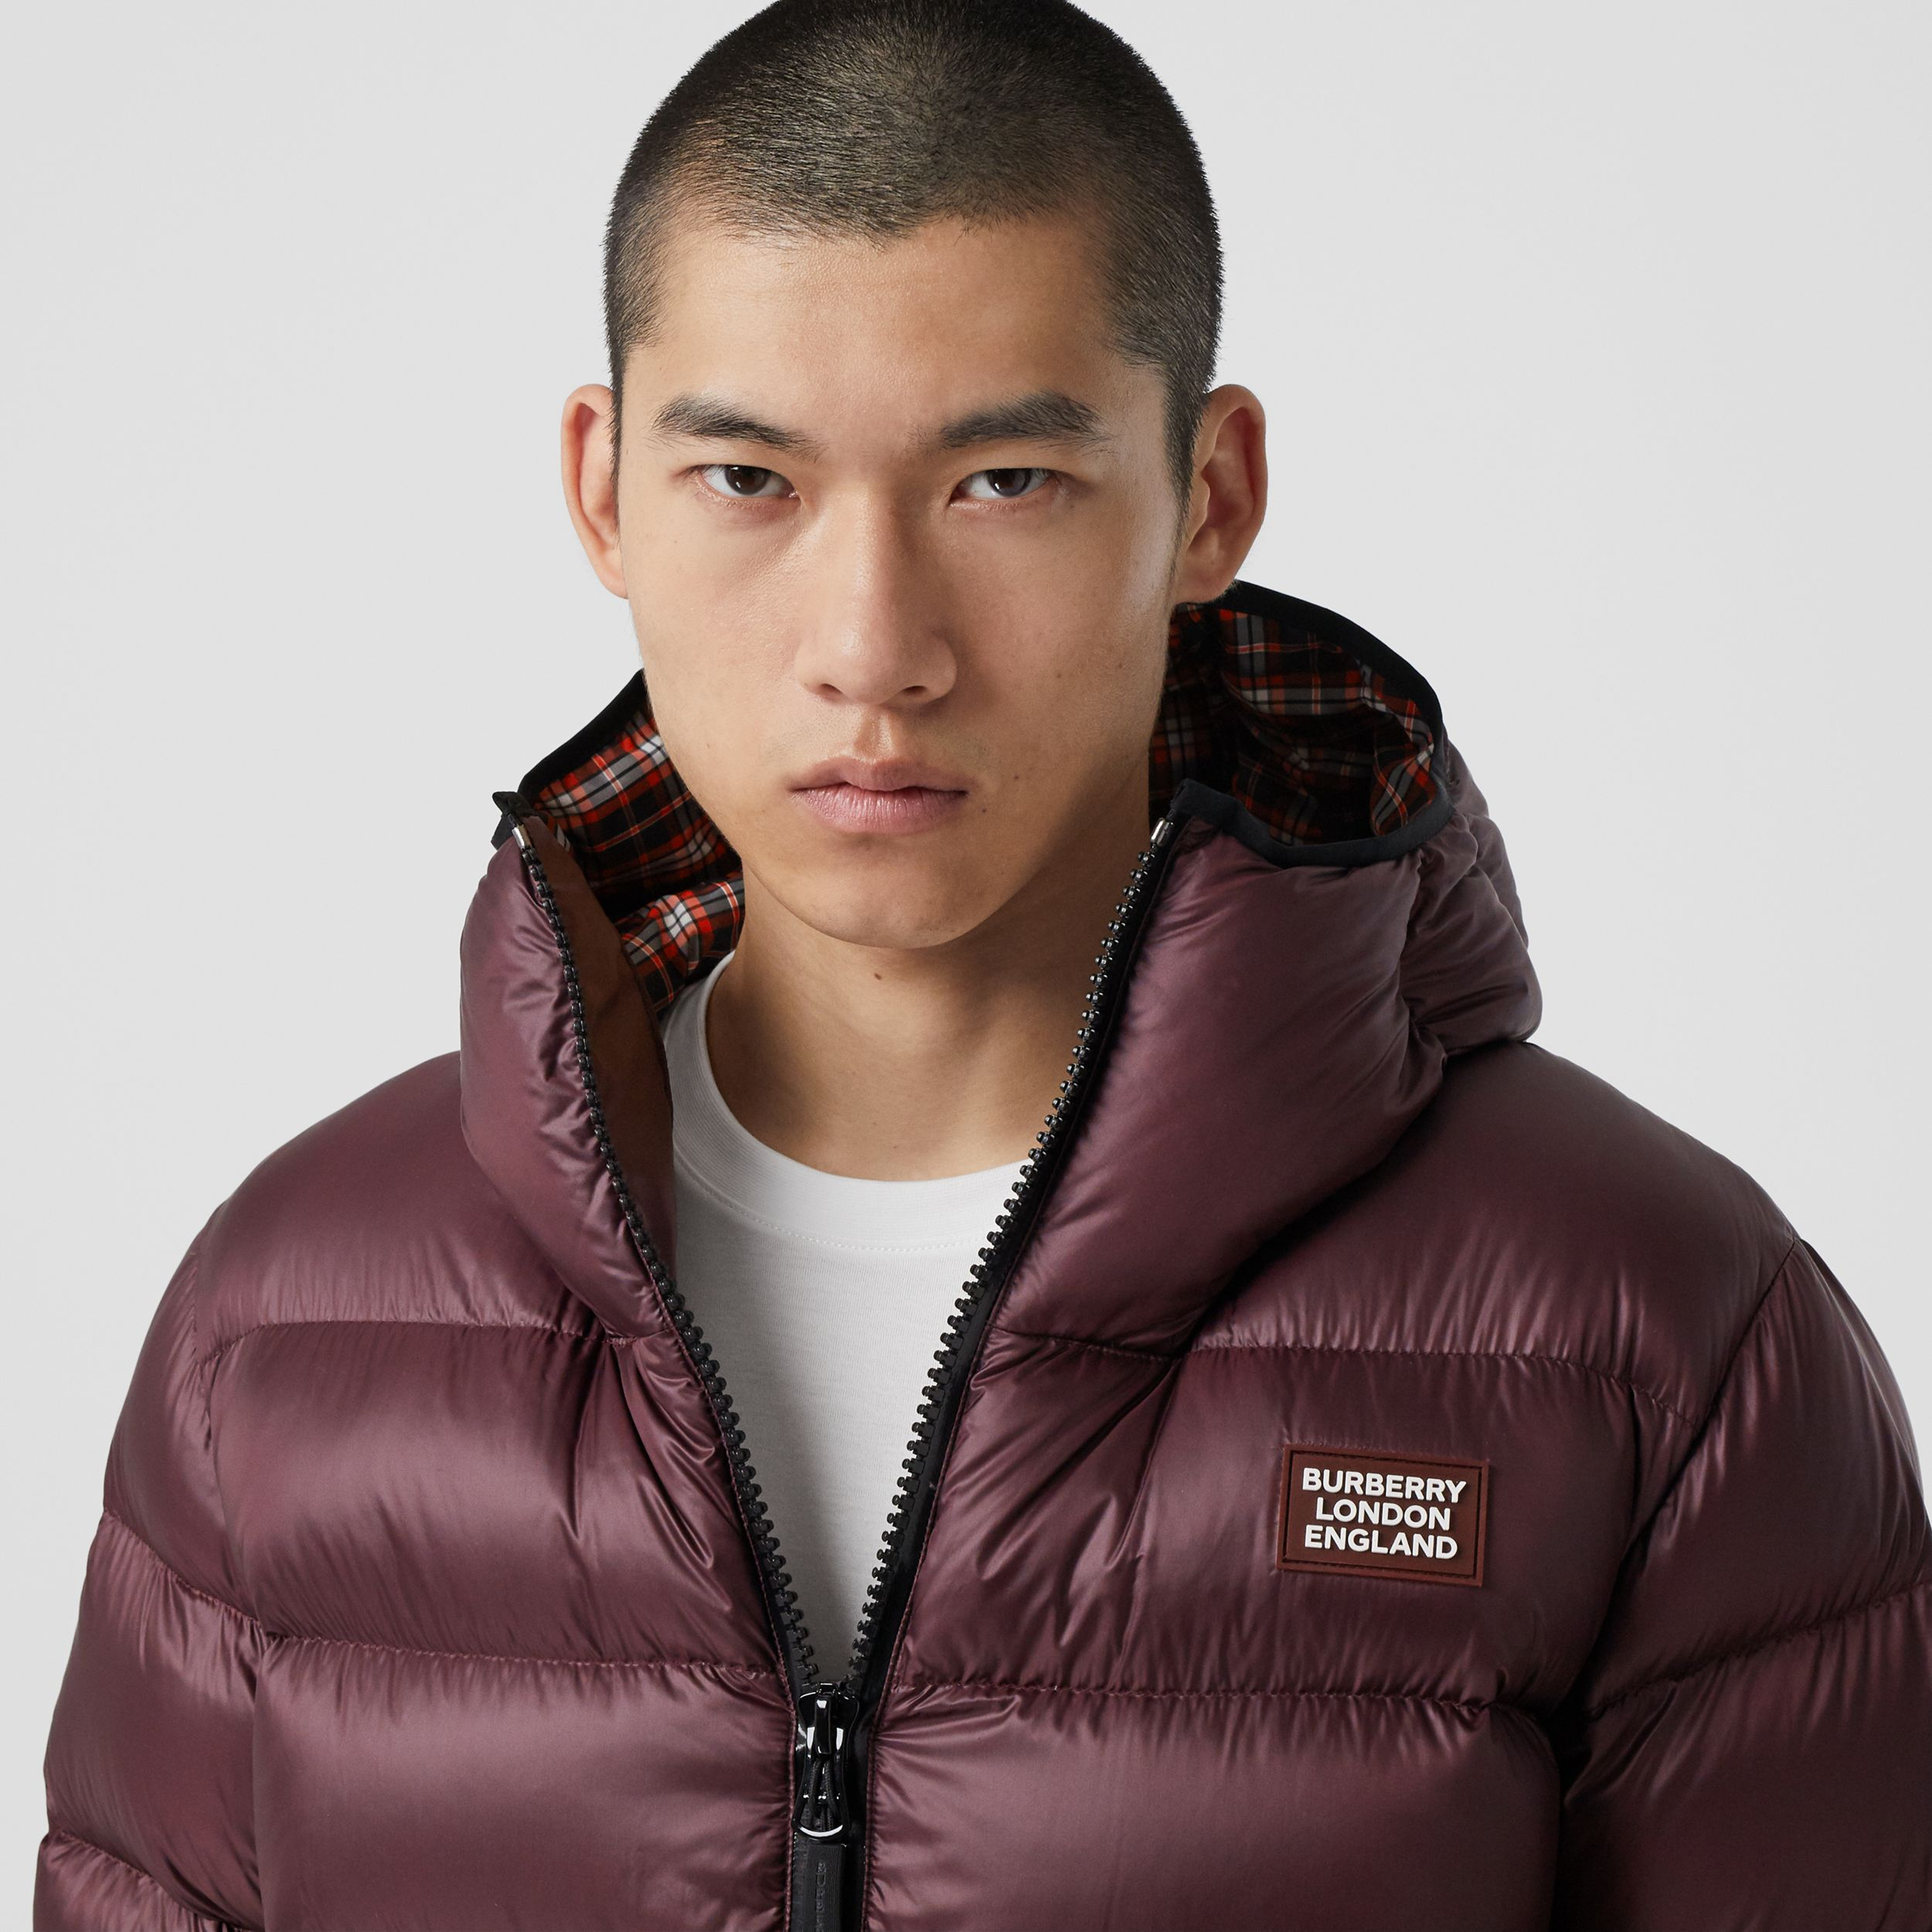 Logo Appliqué Hooded Puffer Jacket in Dark Plum | Burberry - 2